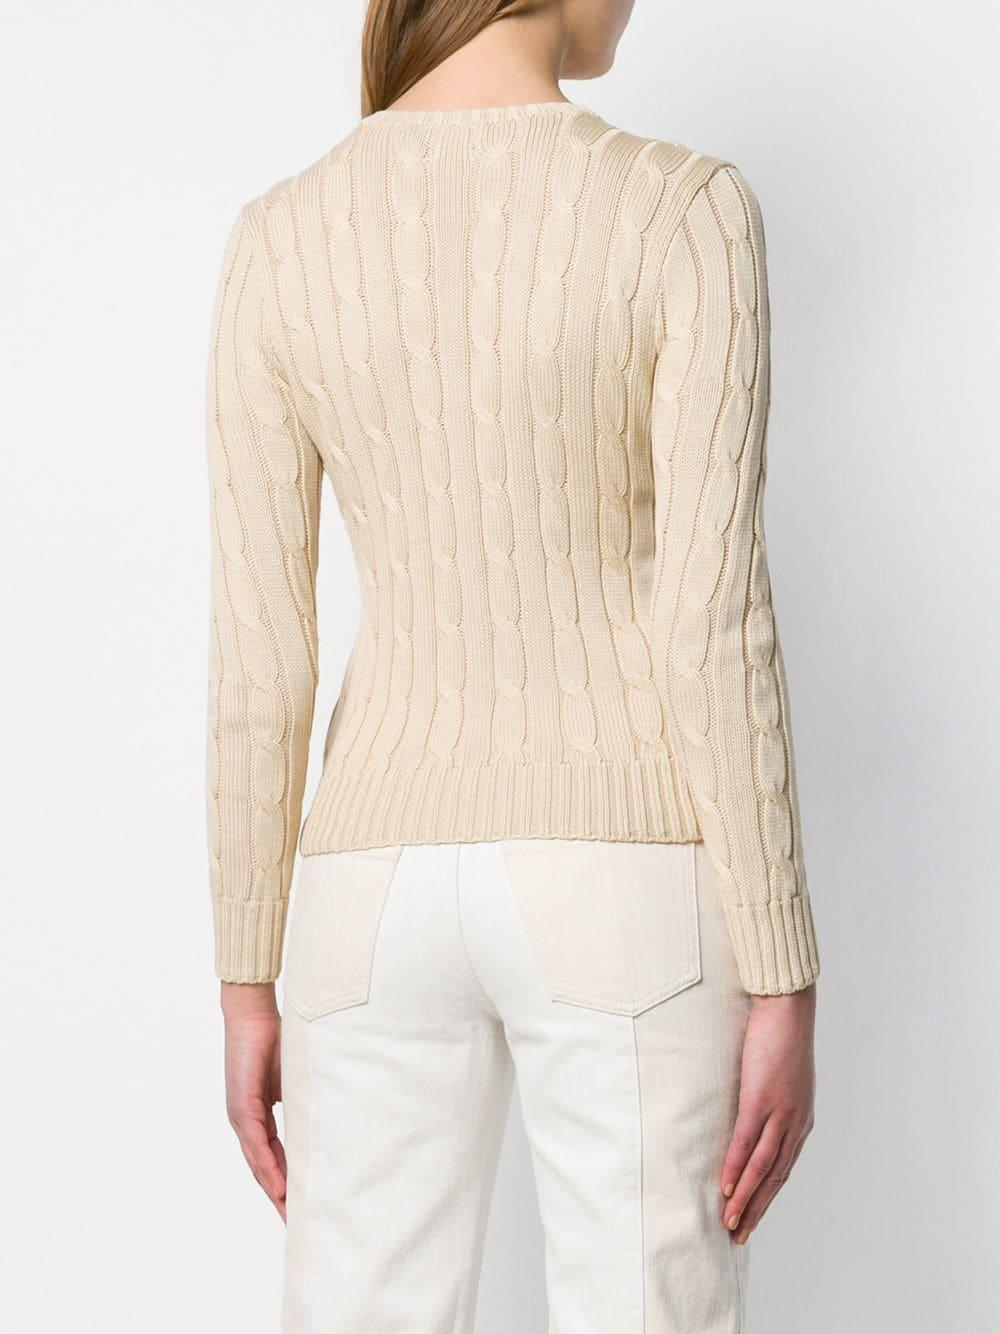 7ebf2b47e9c Lyst - Polo Ralph Lauren Cable Knit Sweater in Natural